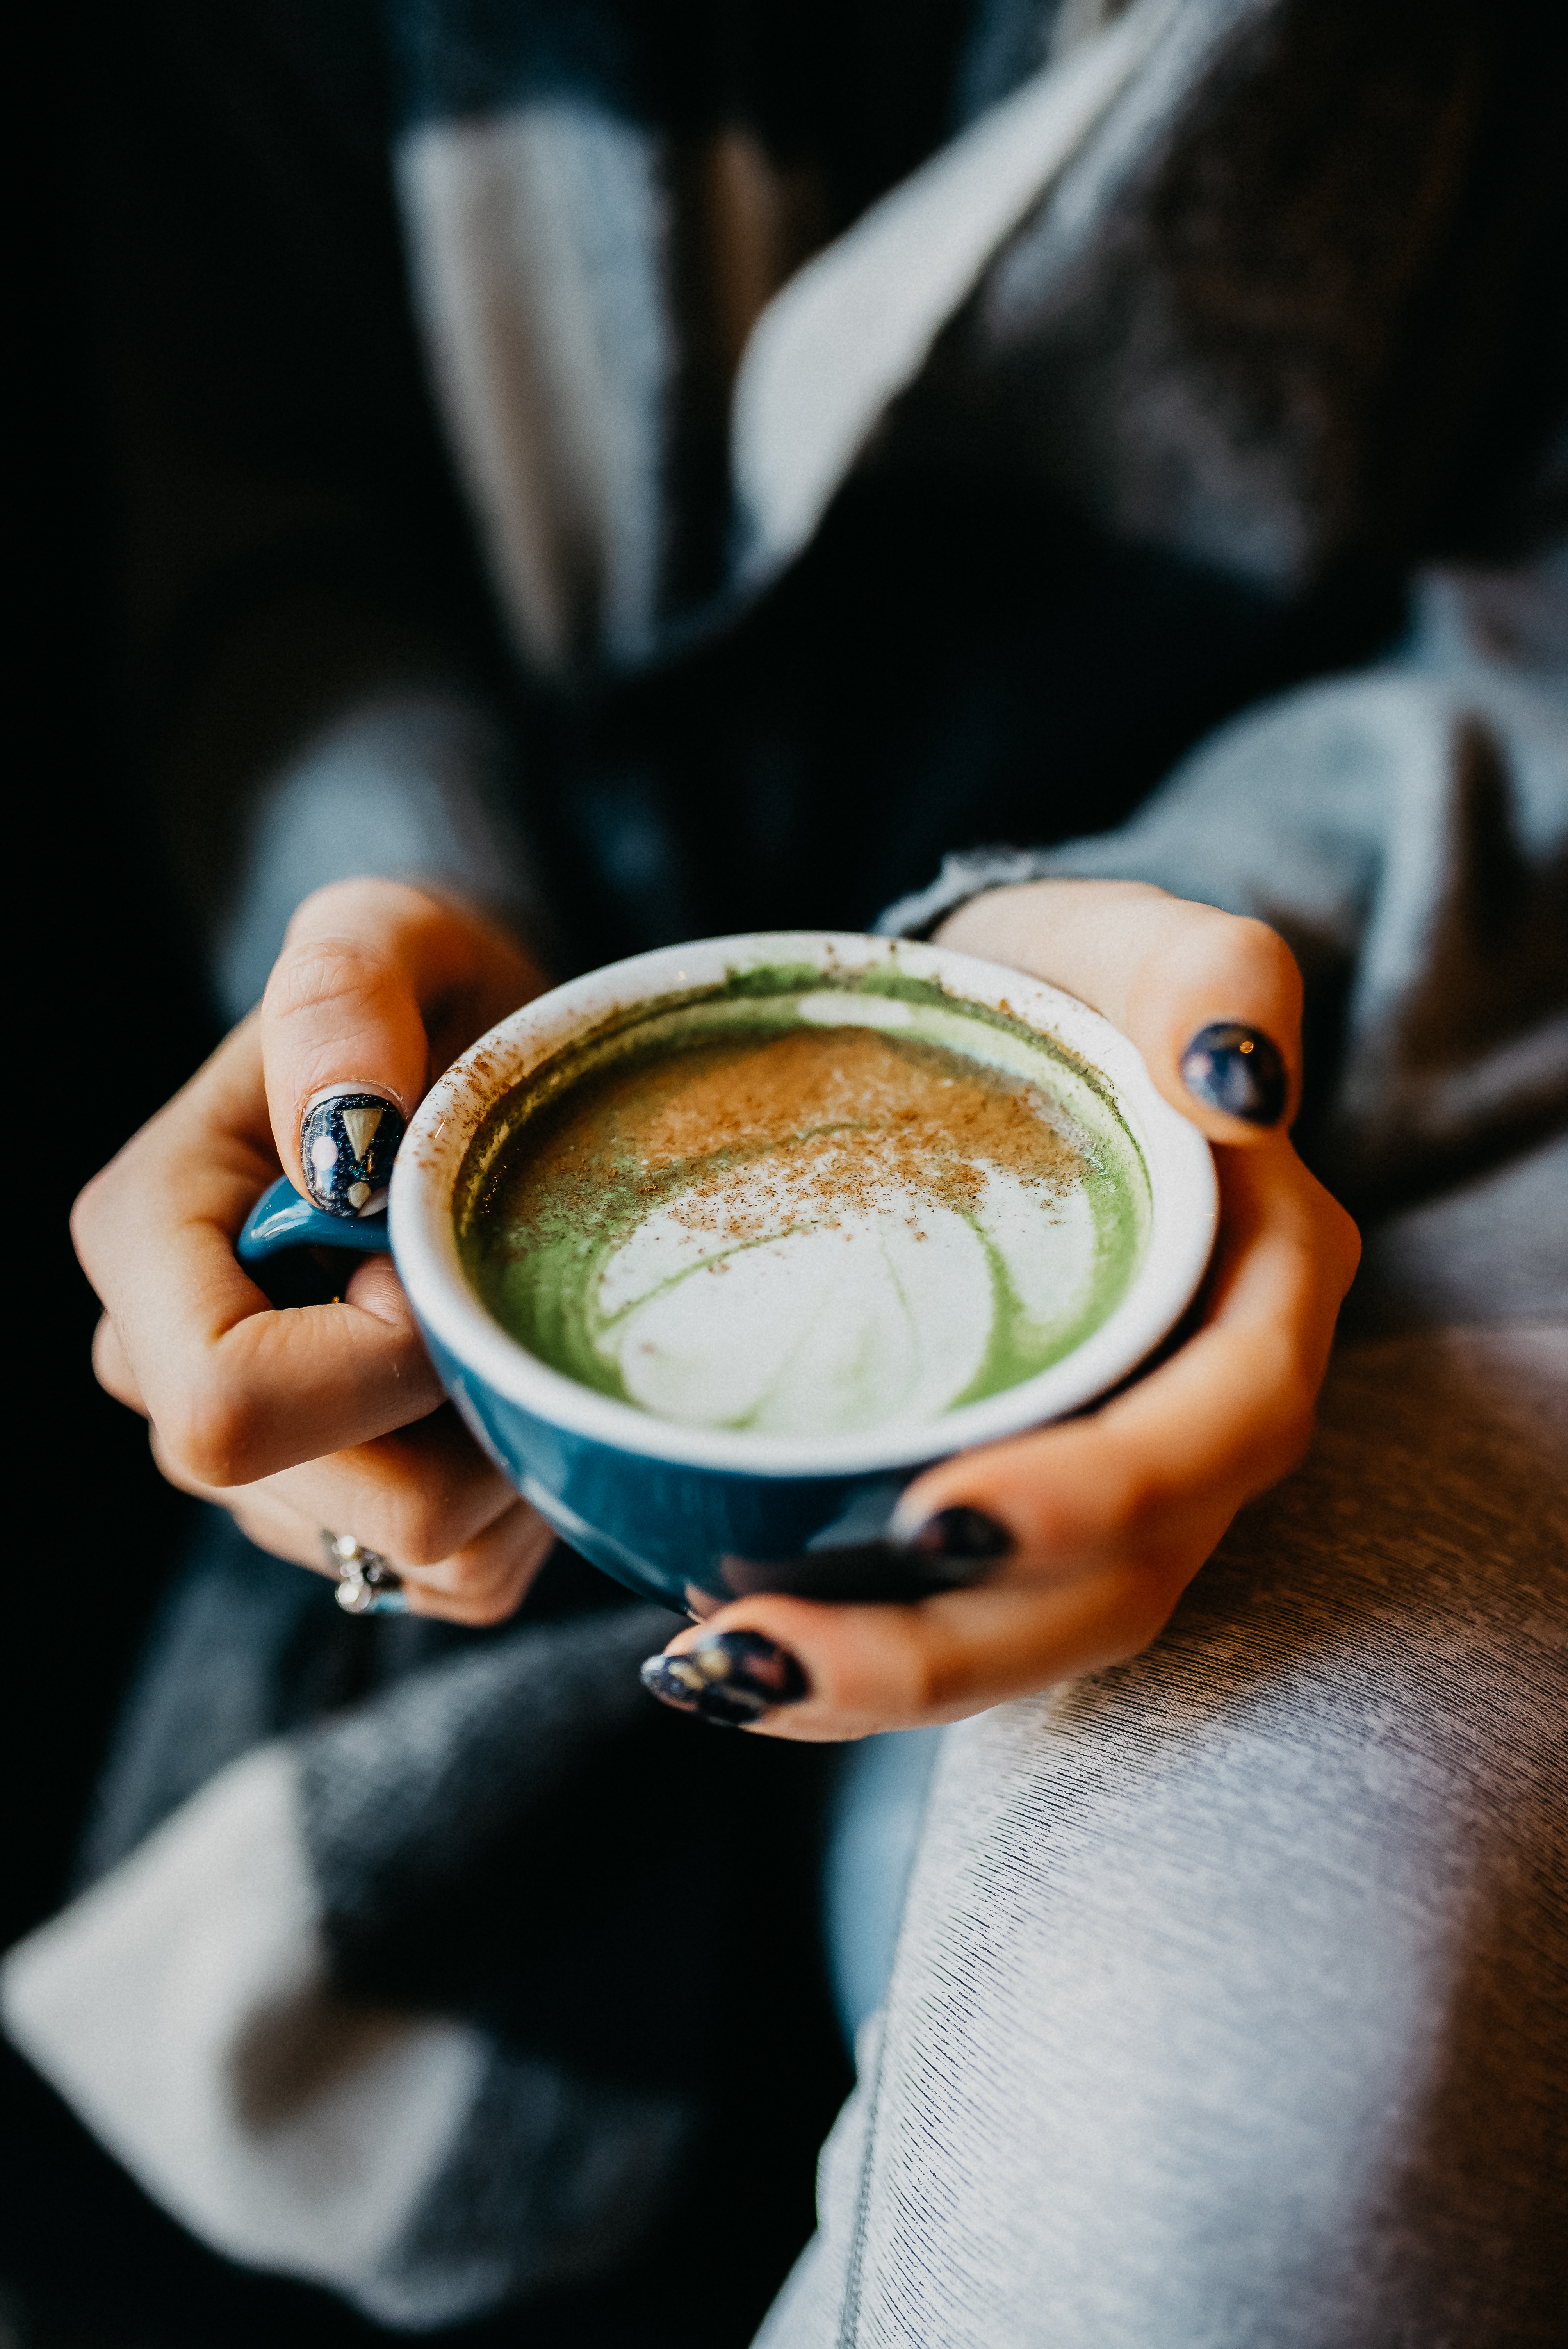 be1739c89 Chickpea's Guide to the Best (Not So Sweet) Matcha in Chicago - Chickpea in  the City | Chickpea in the City